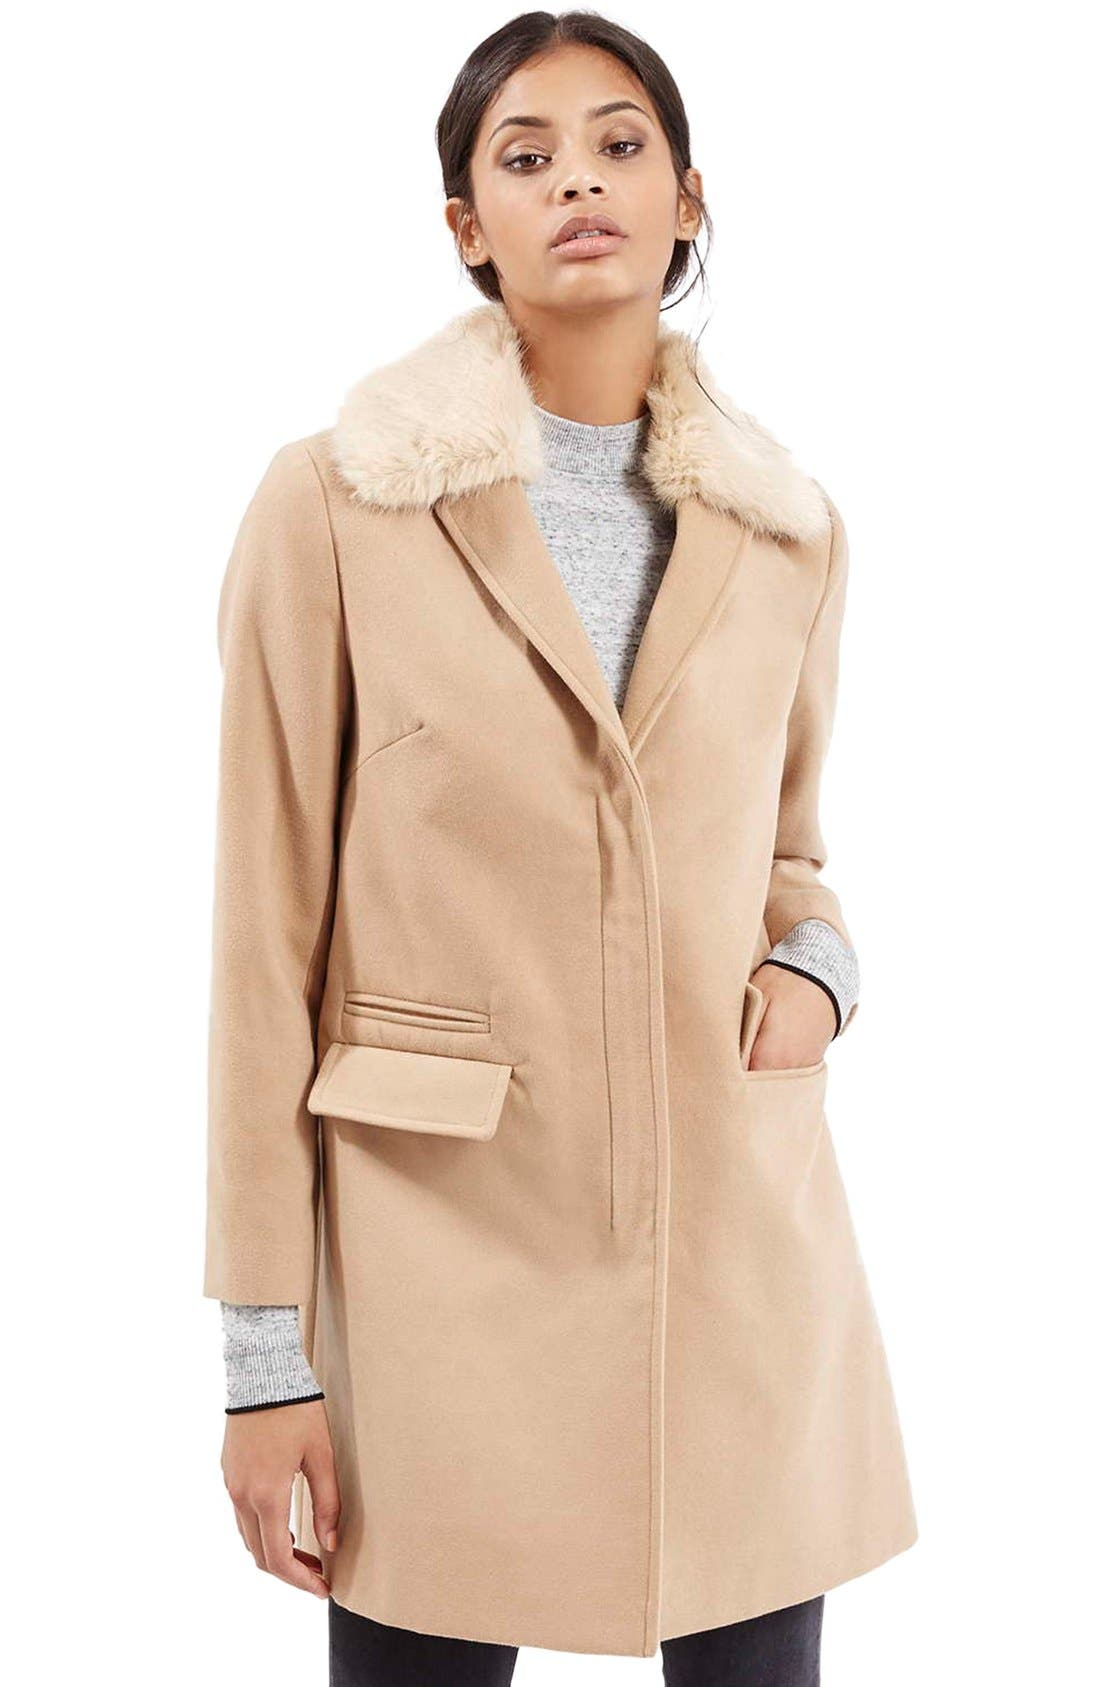 'Mia' Faux Fur Collar Slim Fit Coat,                             Main thumbnail 1, color,                             Camel